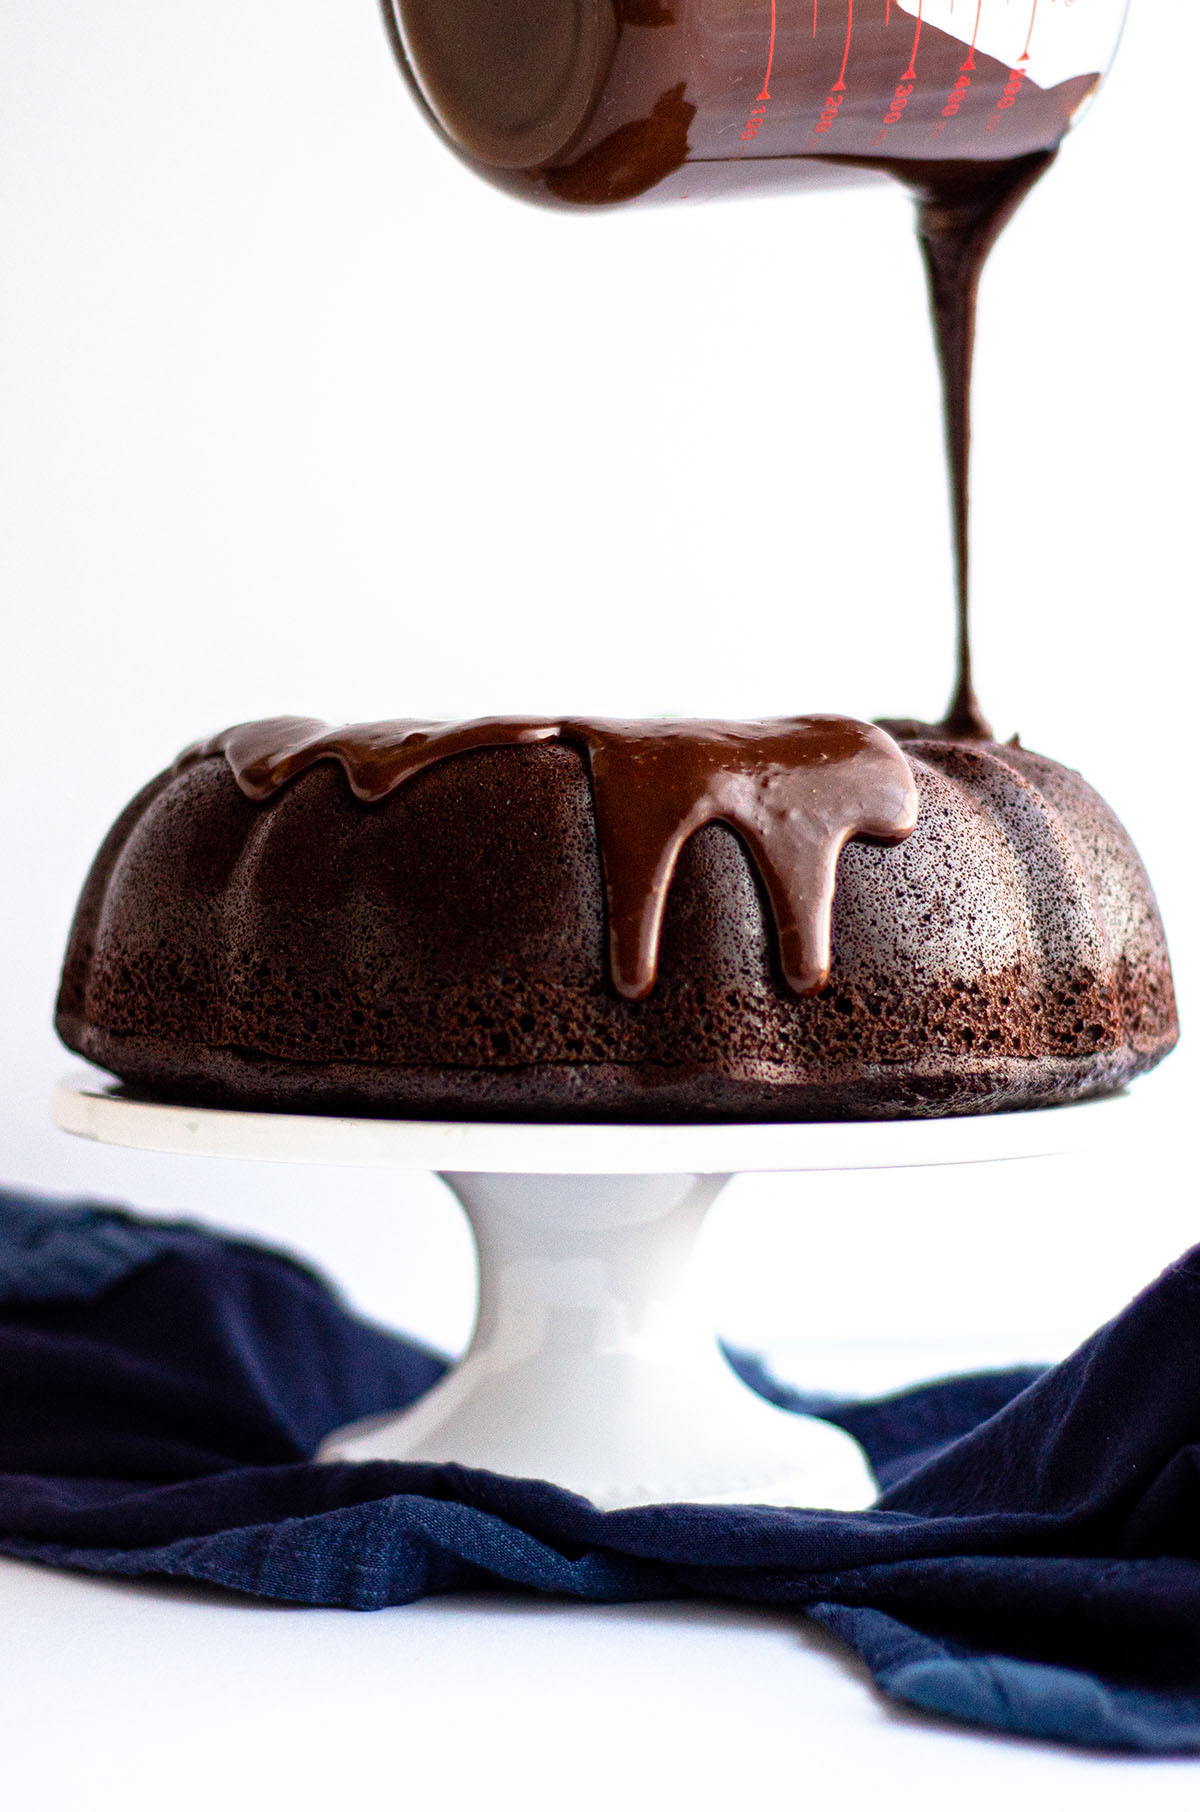 A simple chocolate cake made with rich, deep flavors and topped with a smooth chocolate ganache.